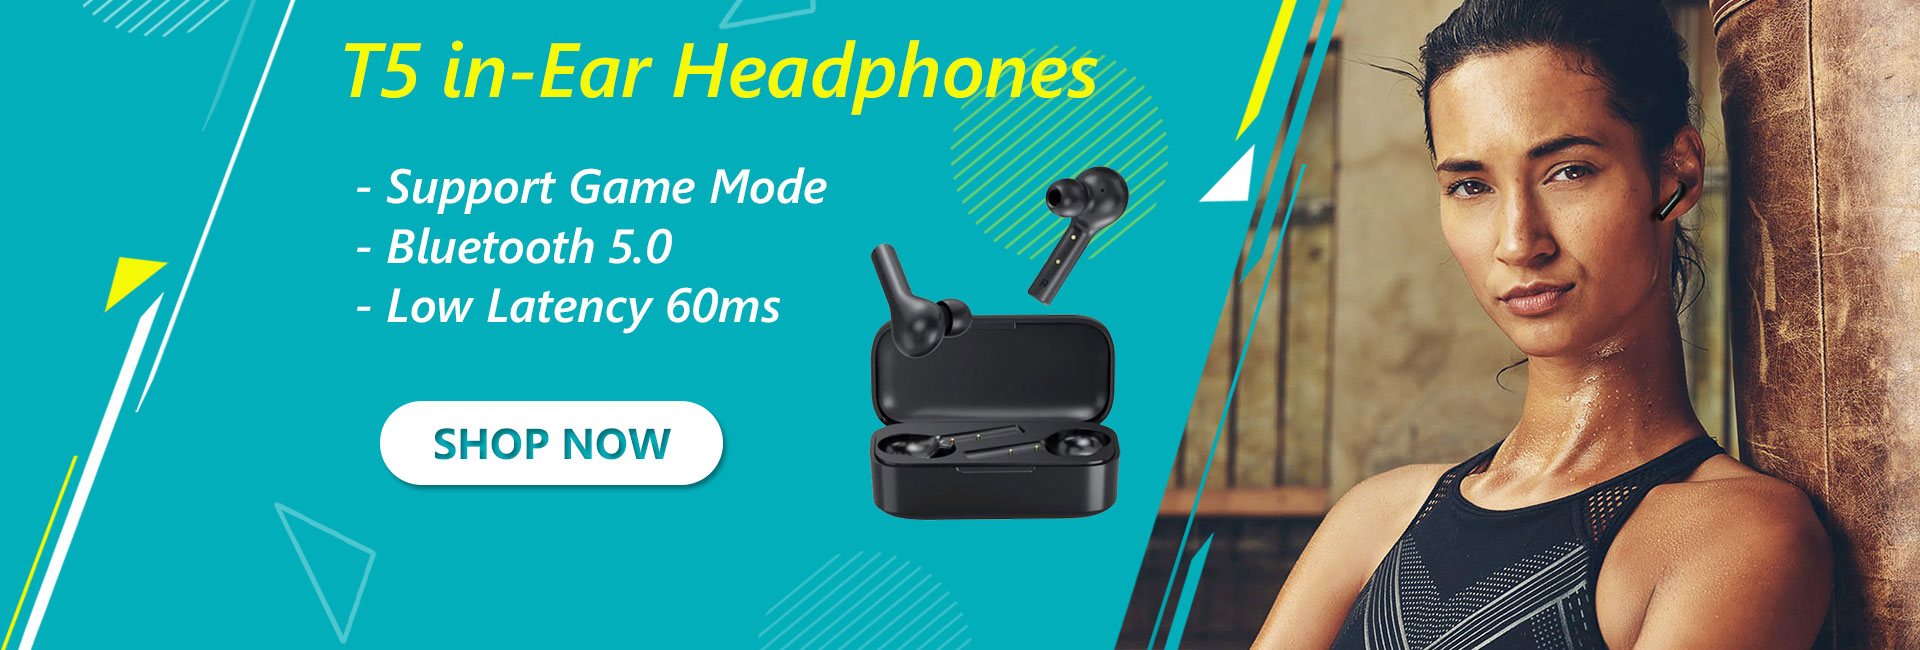 T5 in-Ear Headphones with Game Mode, Low Latency 60ms